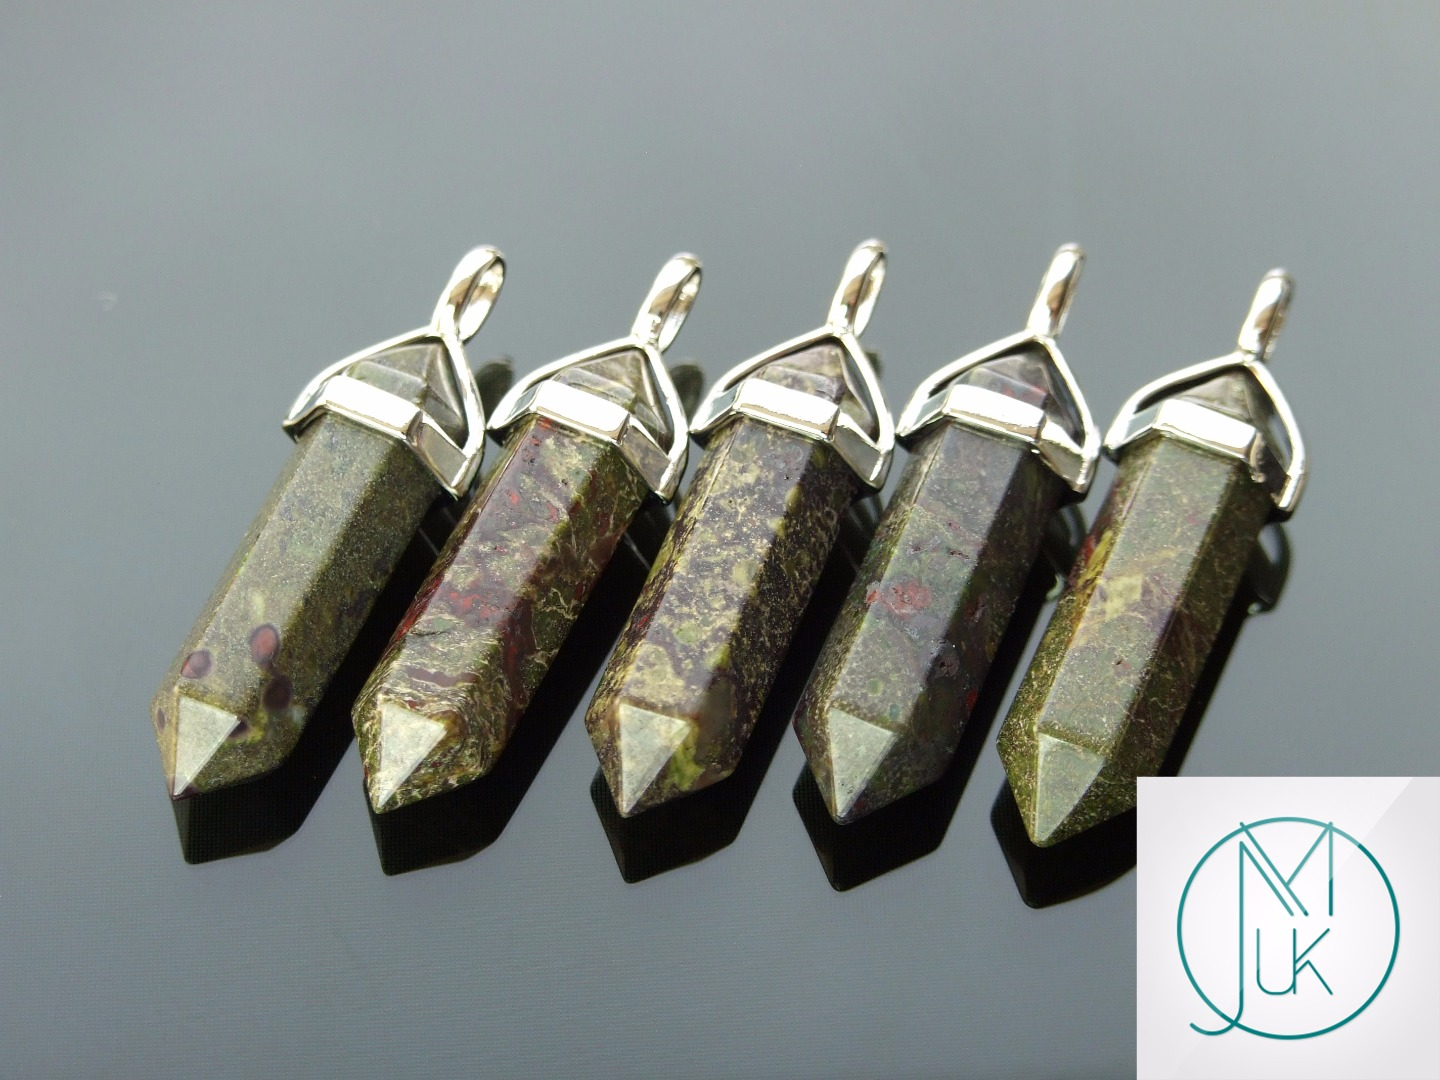 Gemstone-Pendant-for-Necklace-Manmade-or-Natural-Quartz-Crystal-Healing-Stone